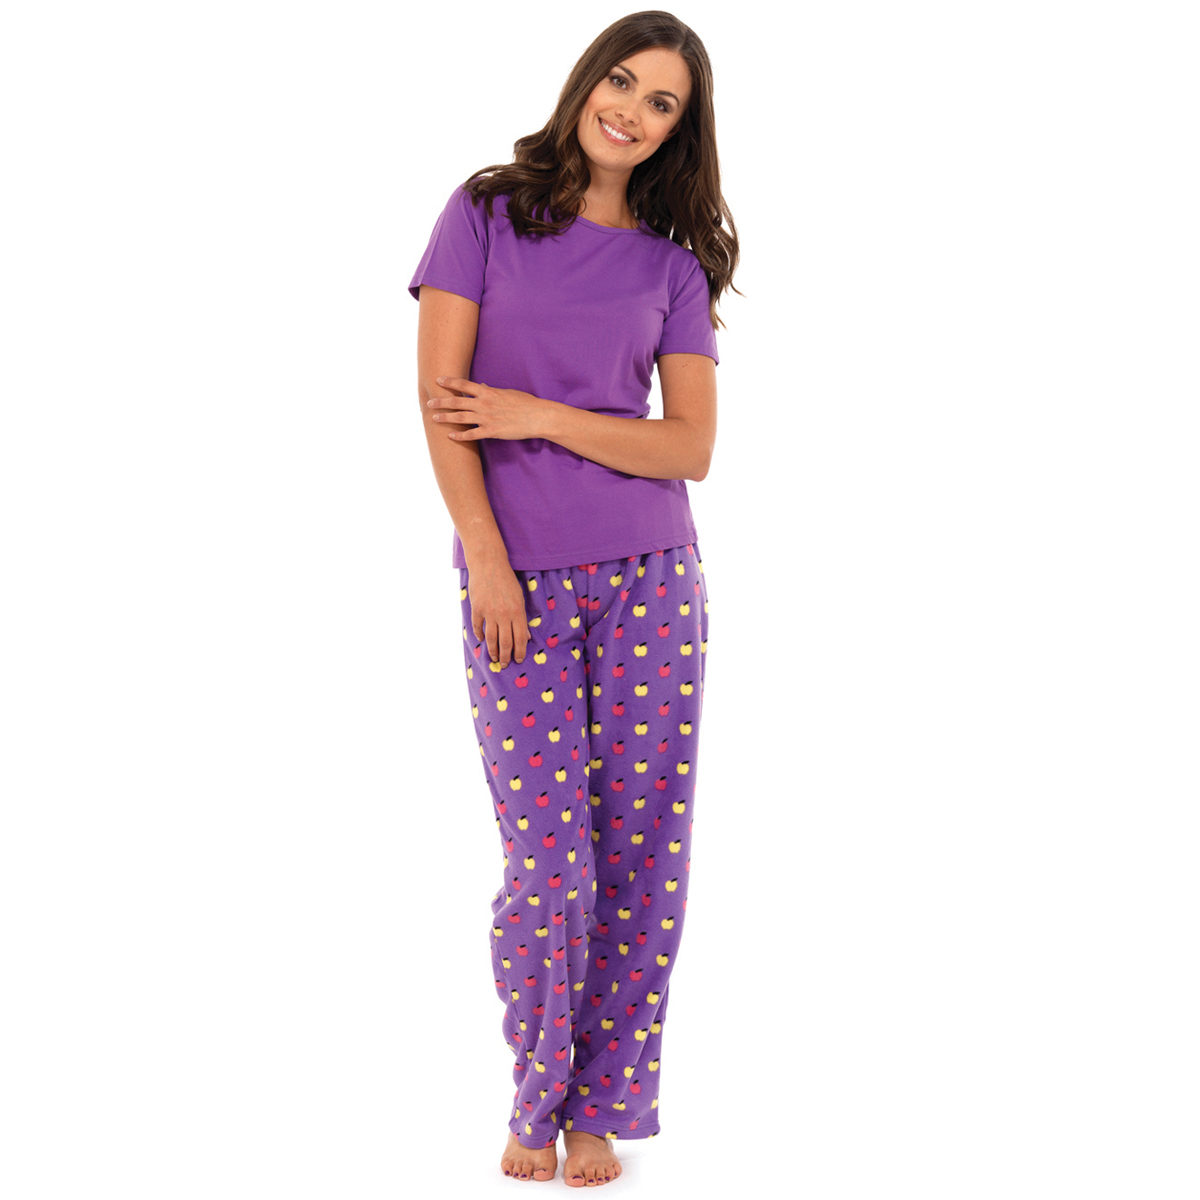 Find a great selection of womens & plus size pajamas at shopnow-jl6vb8f5.ga! Shop pajama sets for women today.